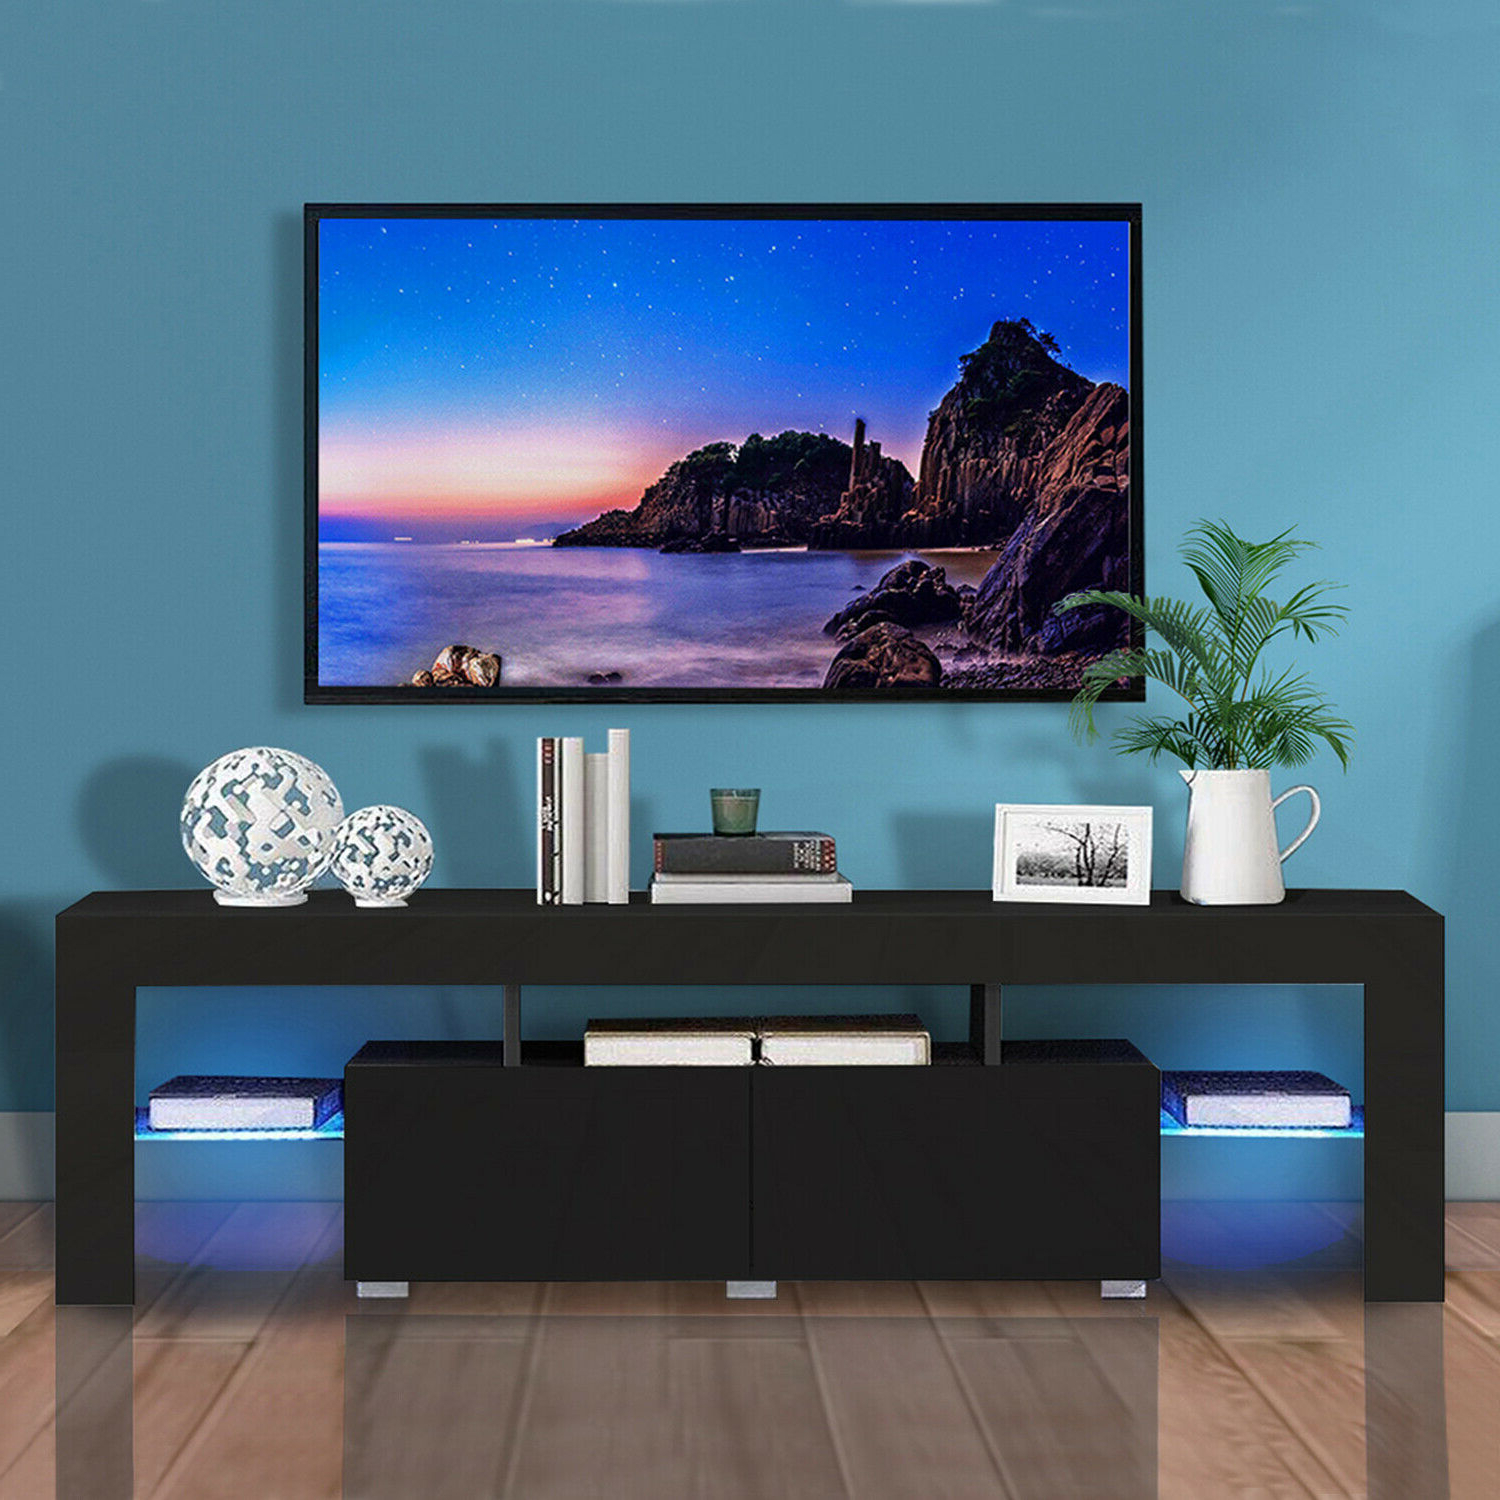 Modern Led Tv Stand Cabinet Unit Media Storage Console Intended For Ktaxon Modern High Gloss Tv Stands With Led Drawer And Shelves (View 6 of 20)